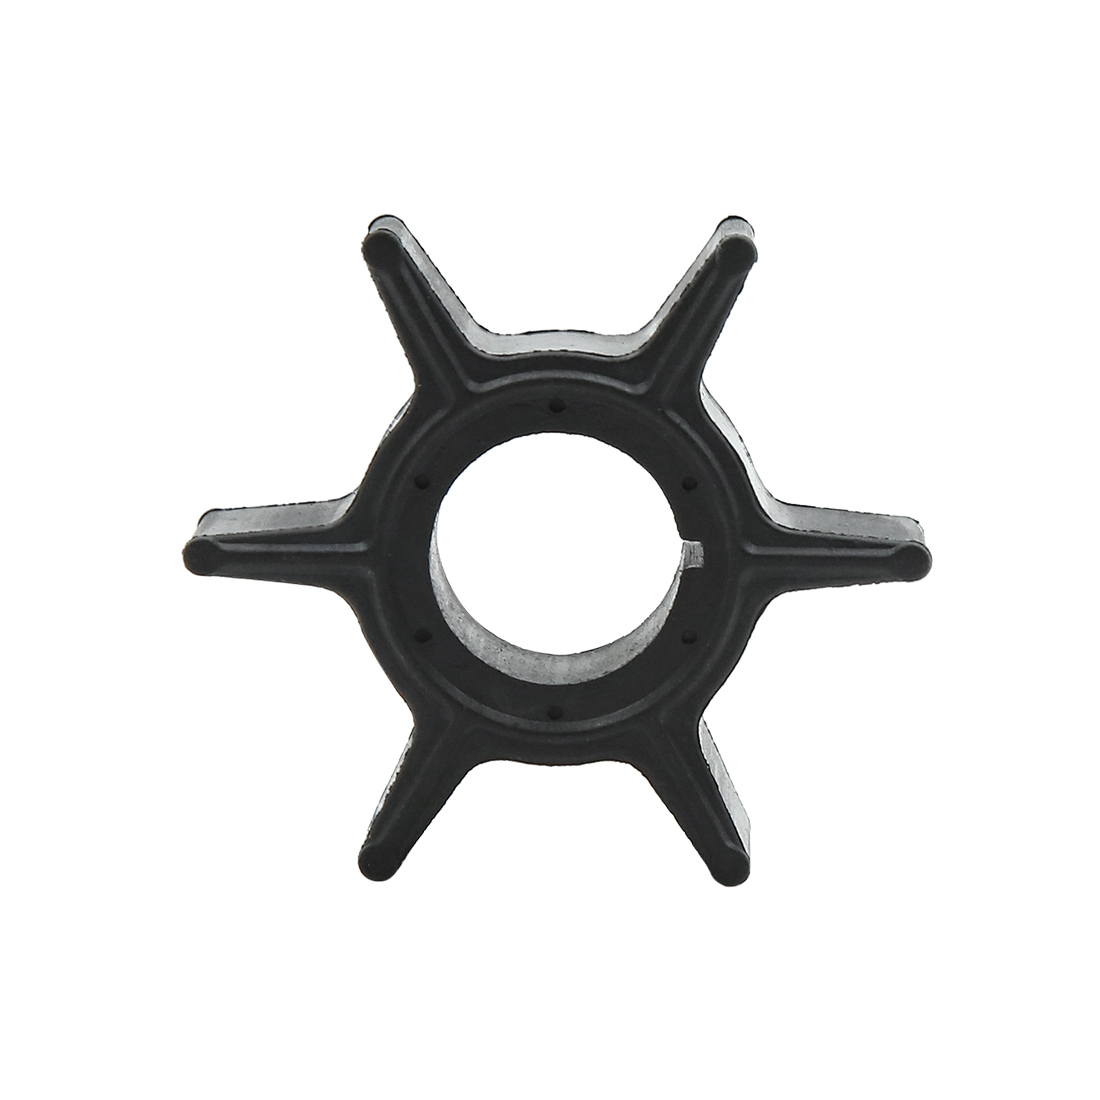 Boat Outboard Water Pump Impeller Replacement Black for Tohatsu 30hp 3C8-65021-2 - image 2 de 4